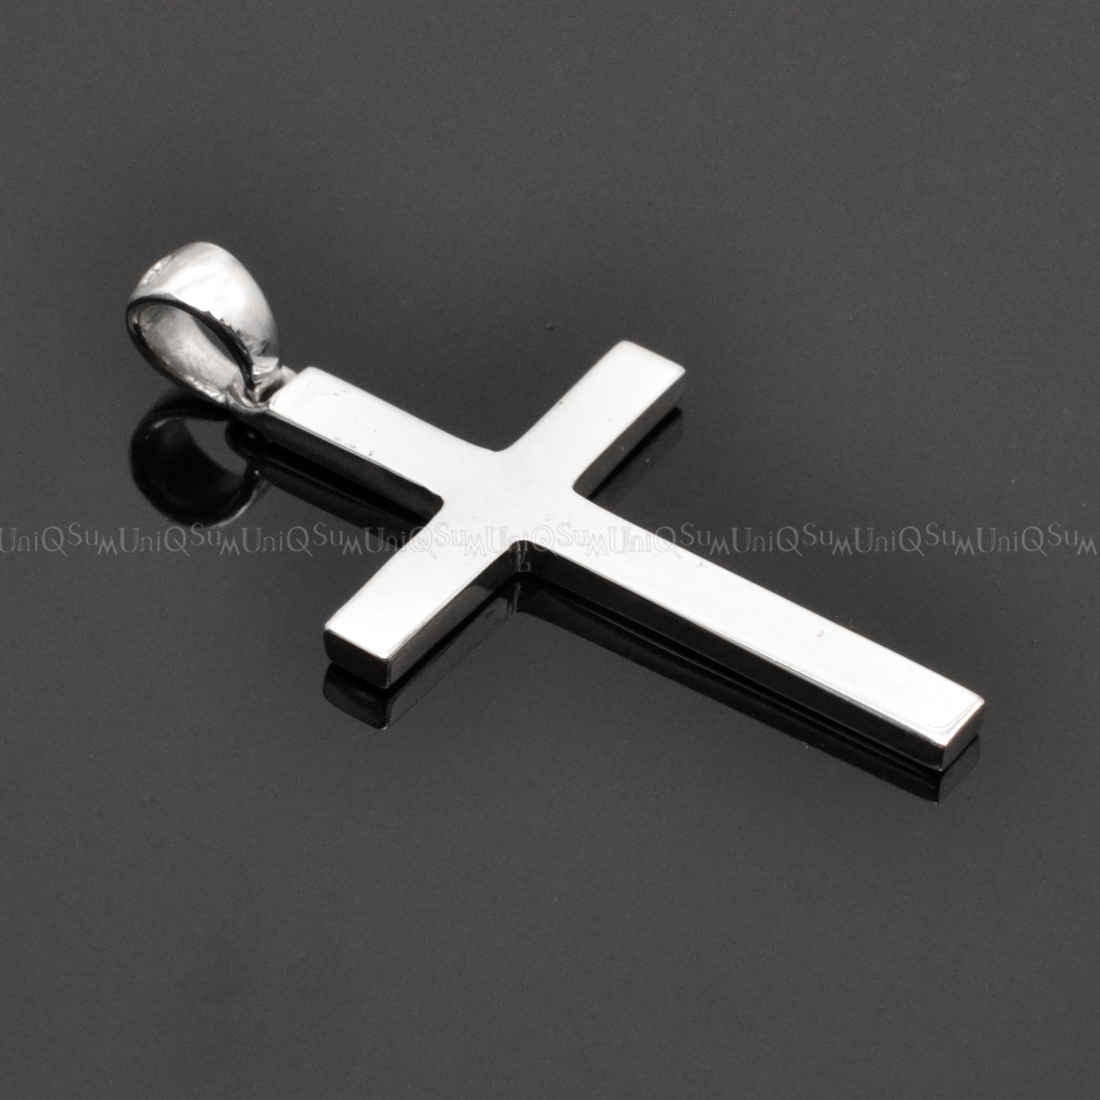 Basic sterling silver cross pendant uniqsum sterling silver charms pendant cross necklaces silver charms aloadofball Image collections